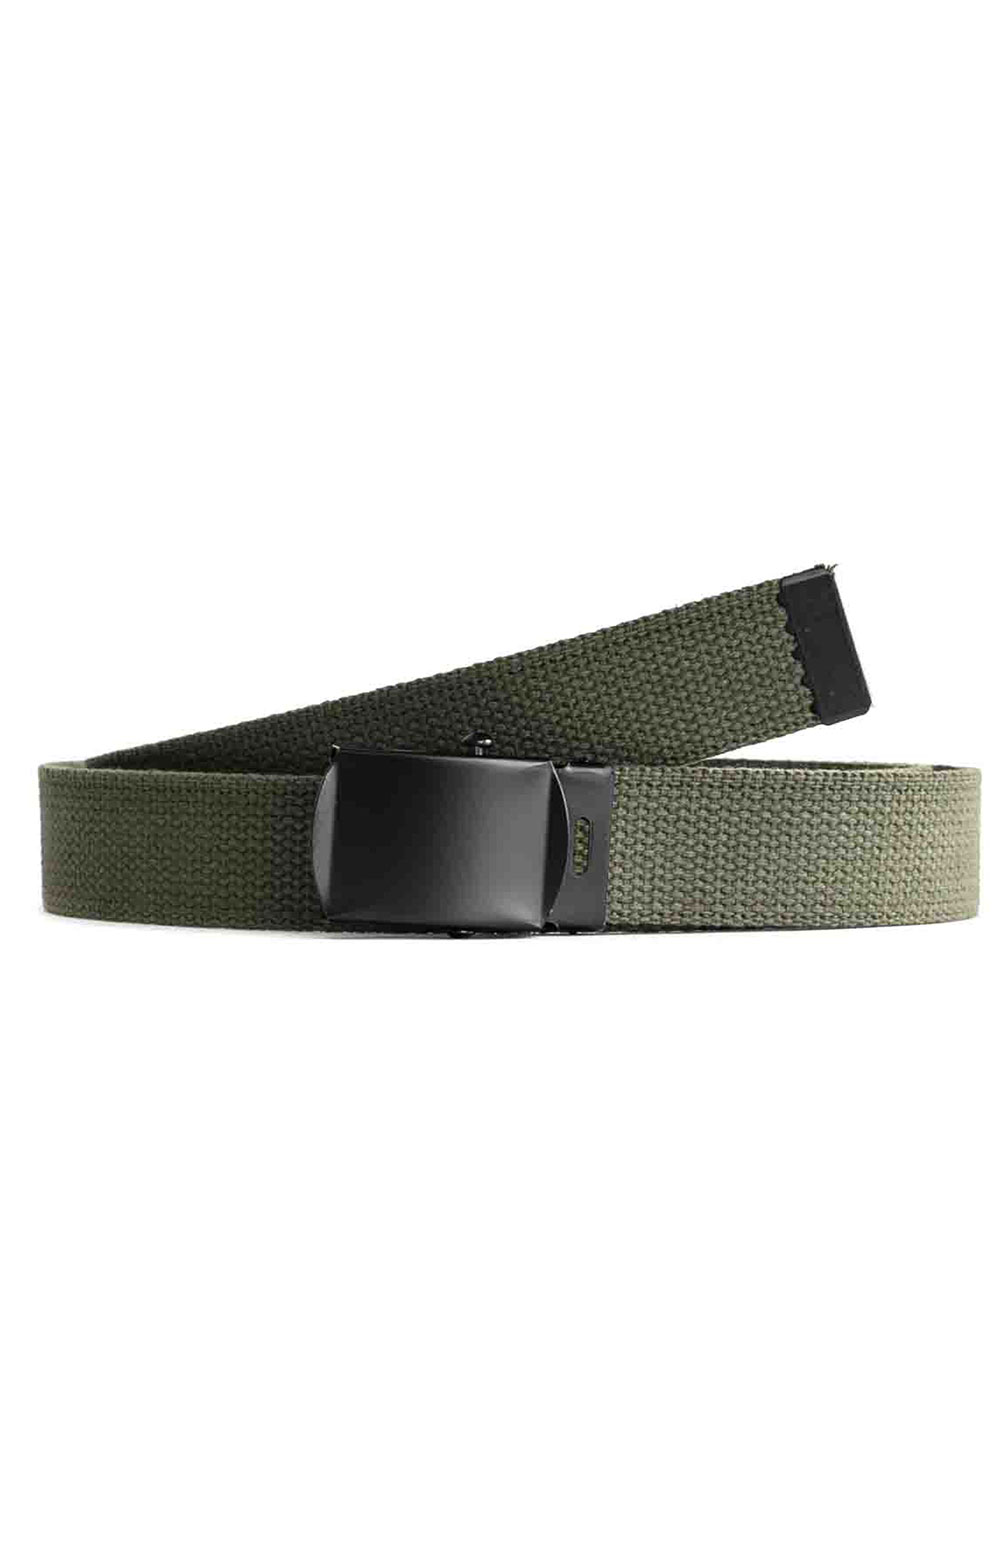 (4294) Military Web Belt With Black Buckle - Olive Drab 2